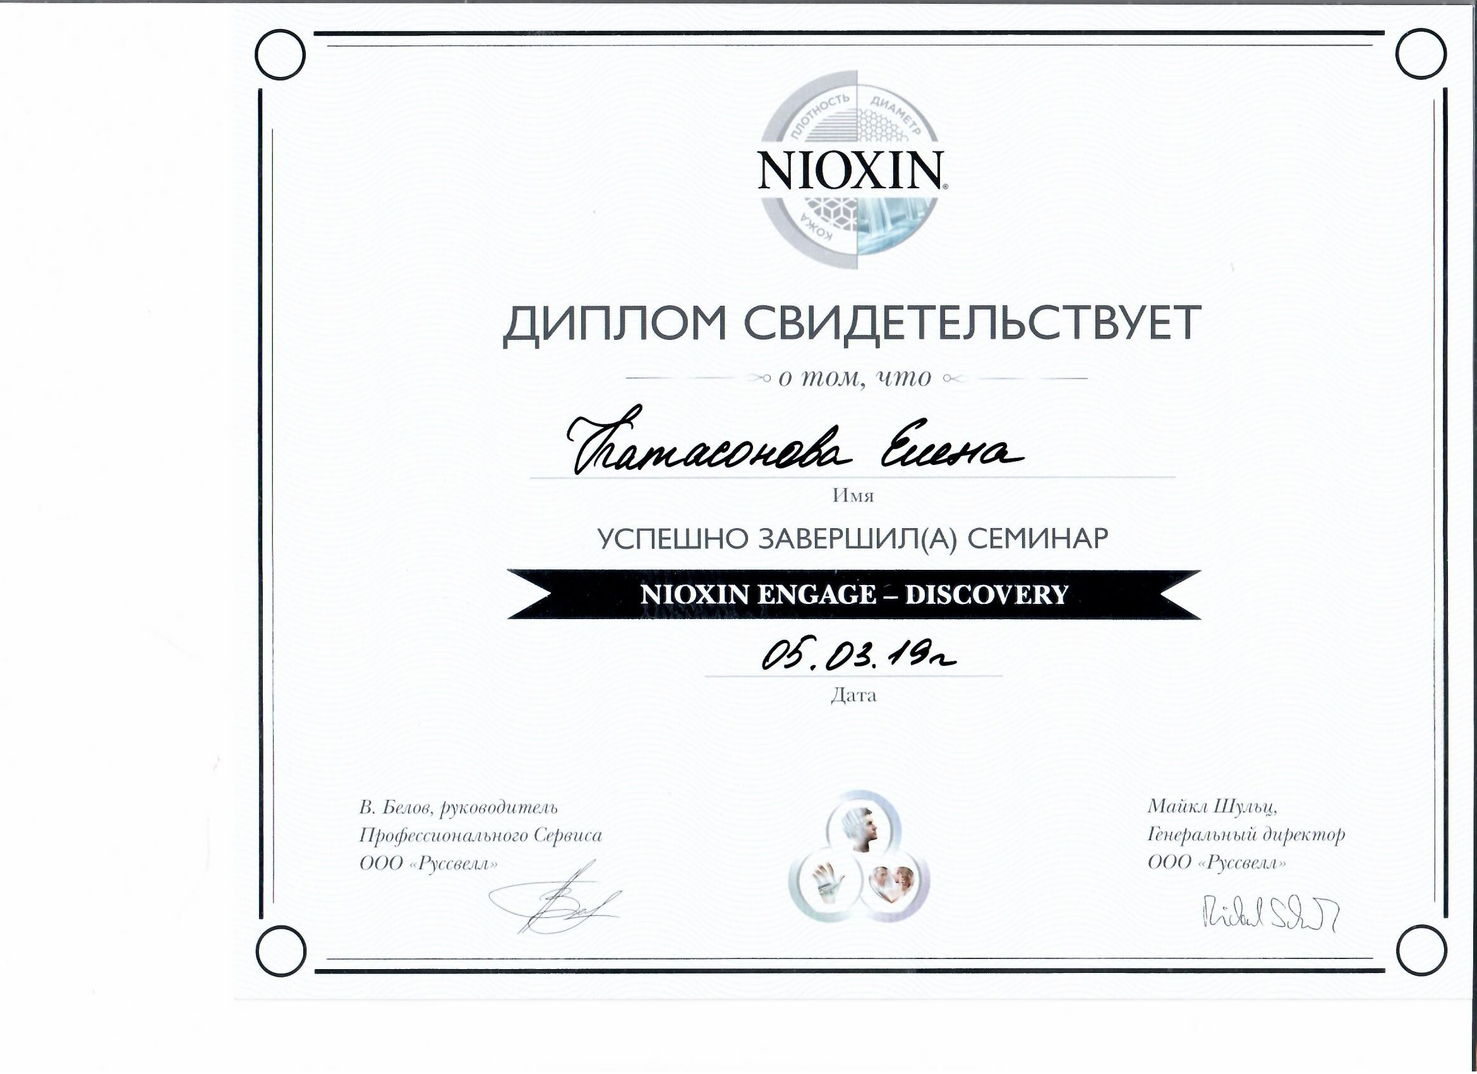 2019 nioxin engage discovery